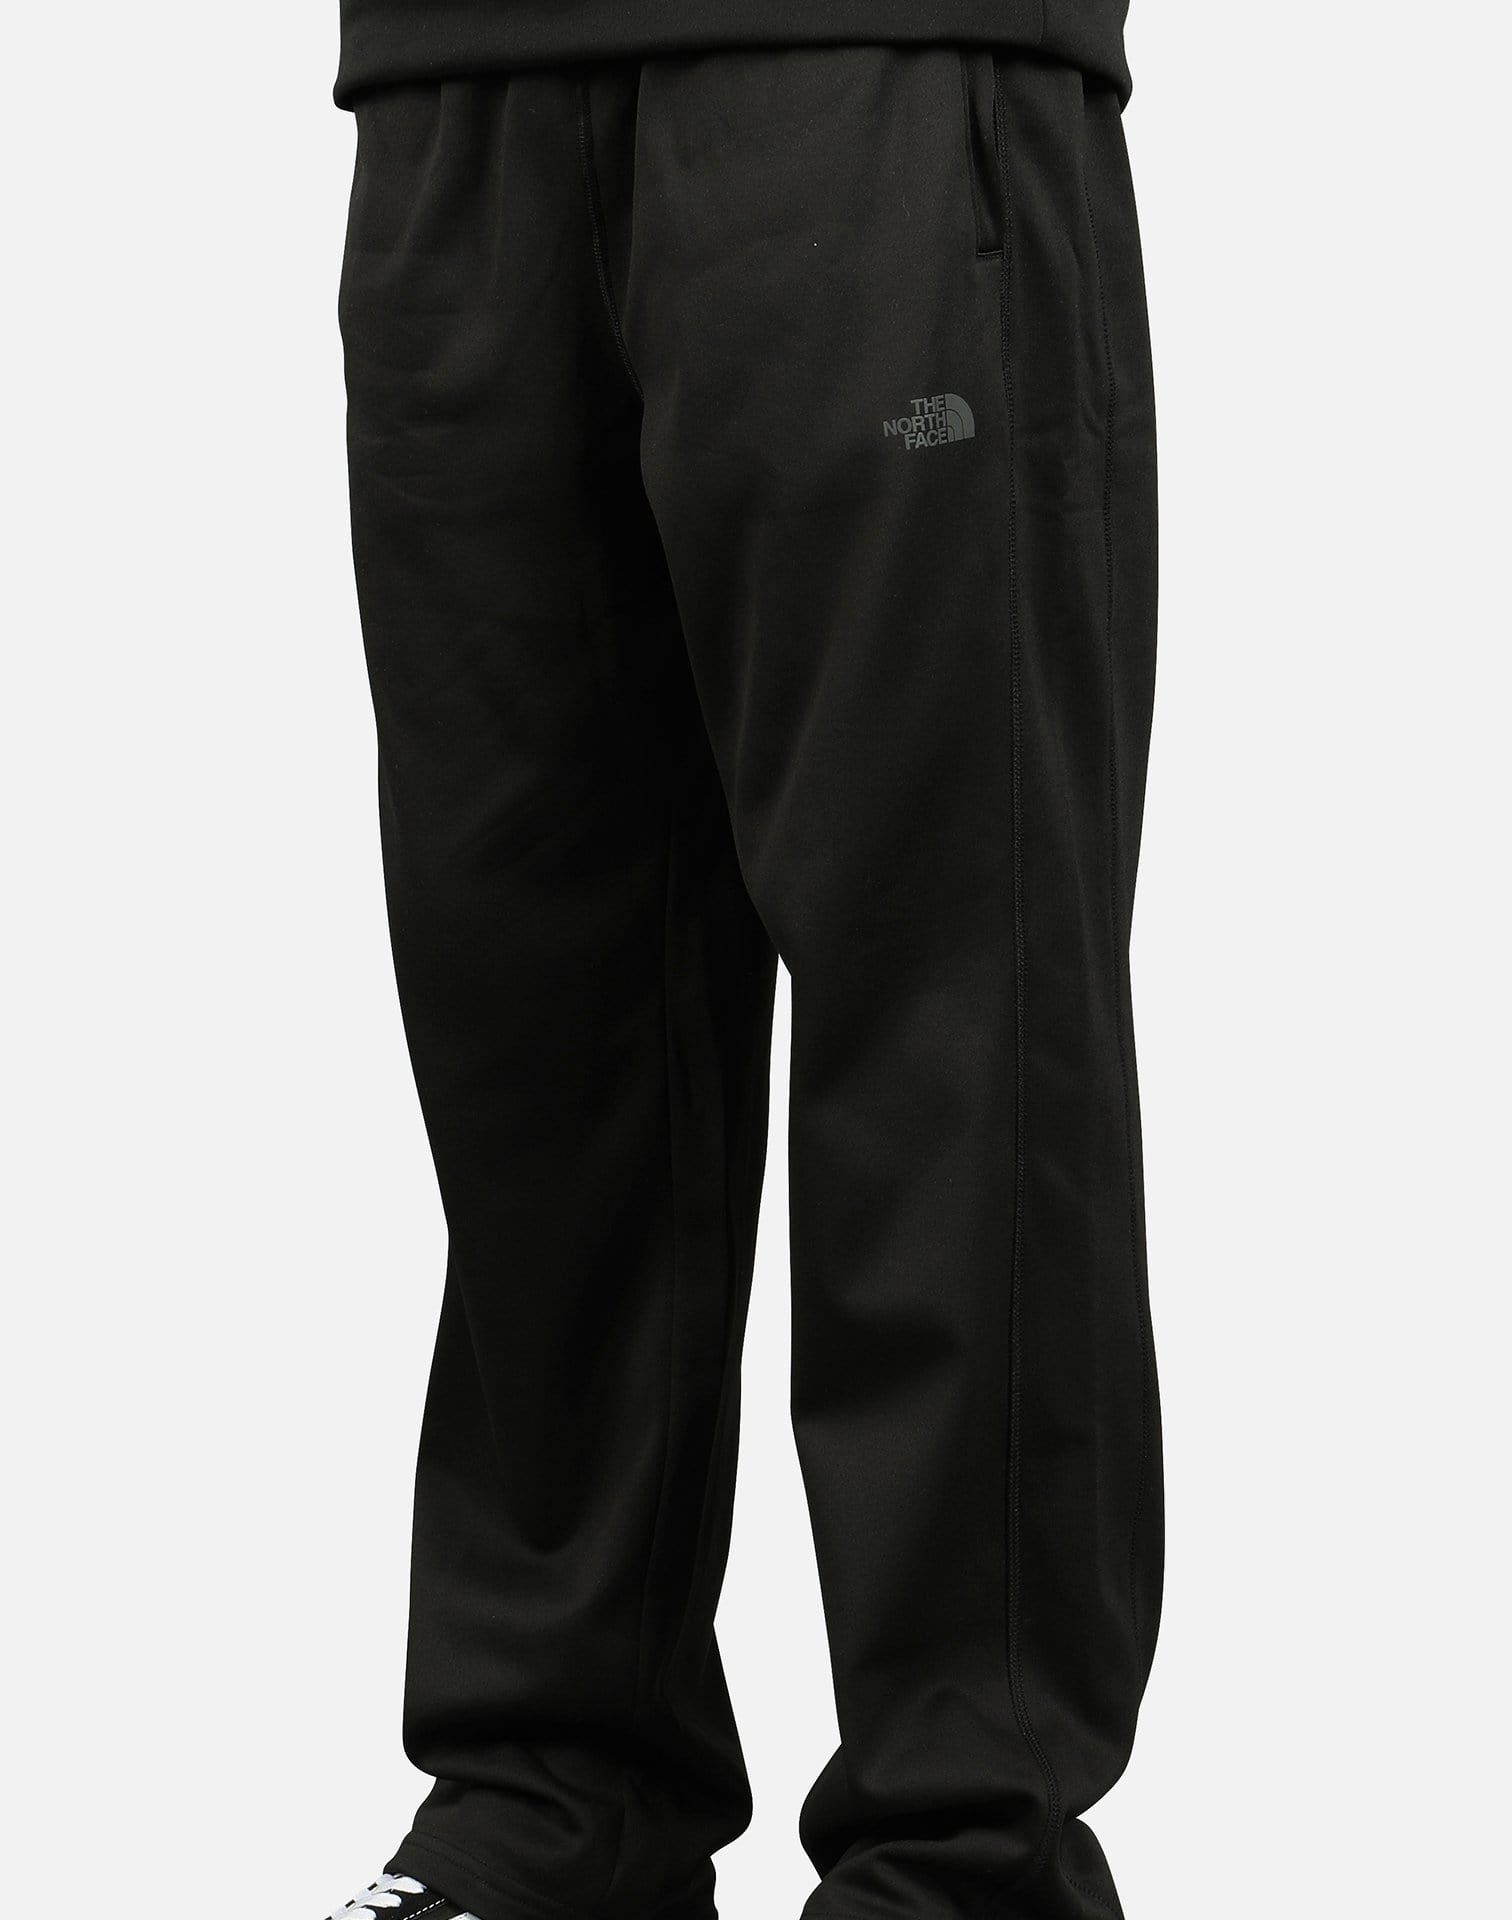 The North Face Men's Surgent Pants